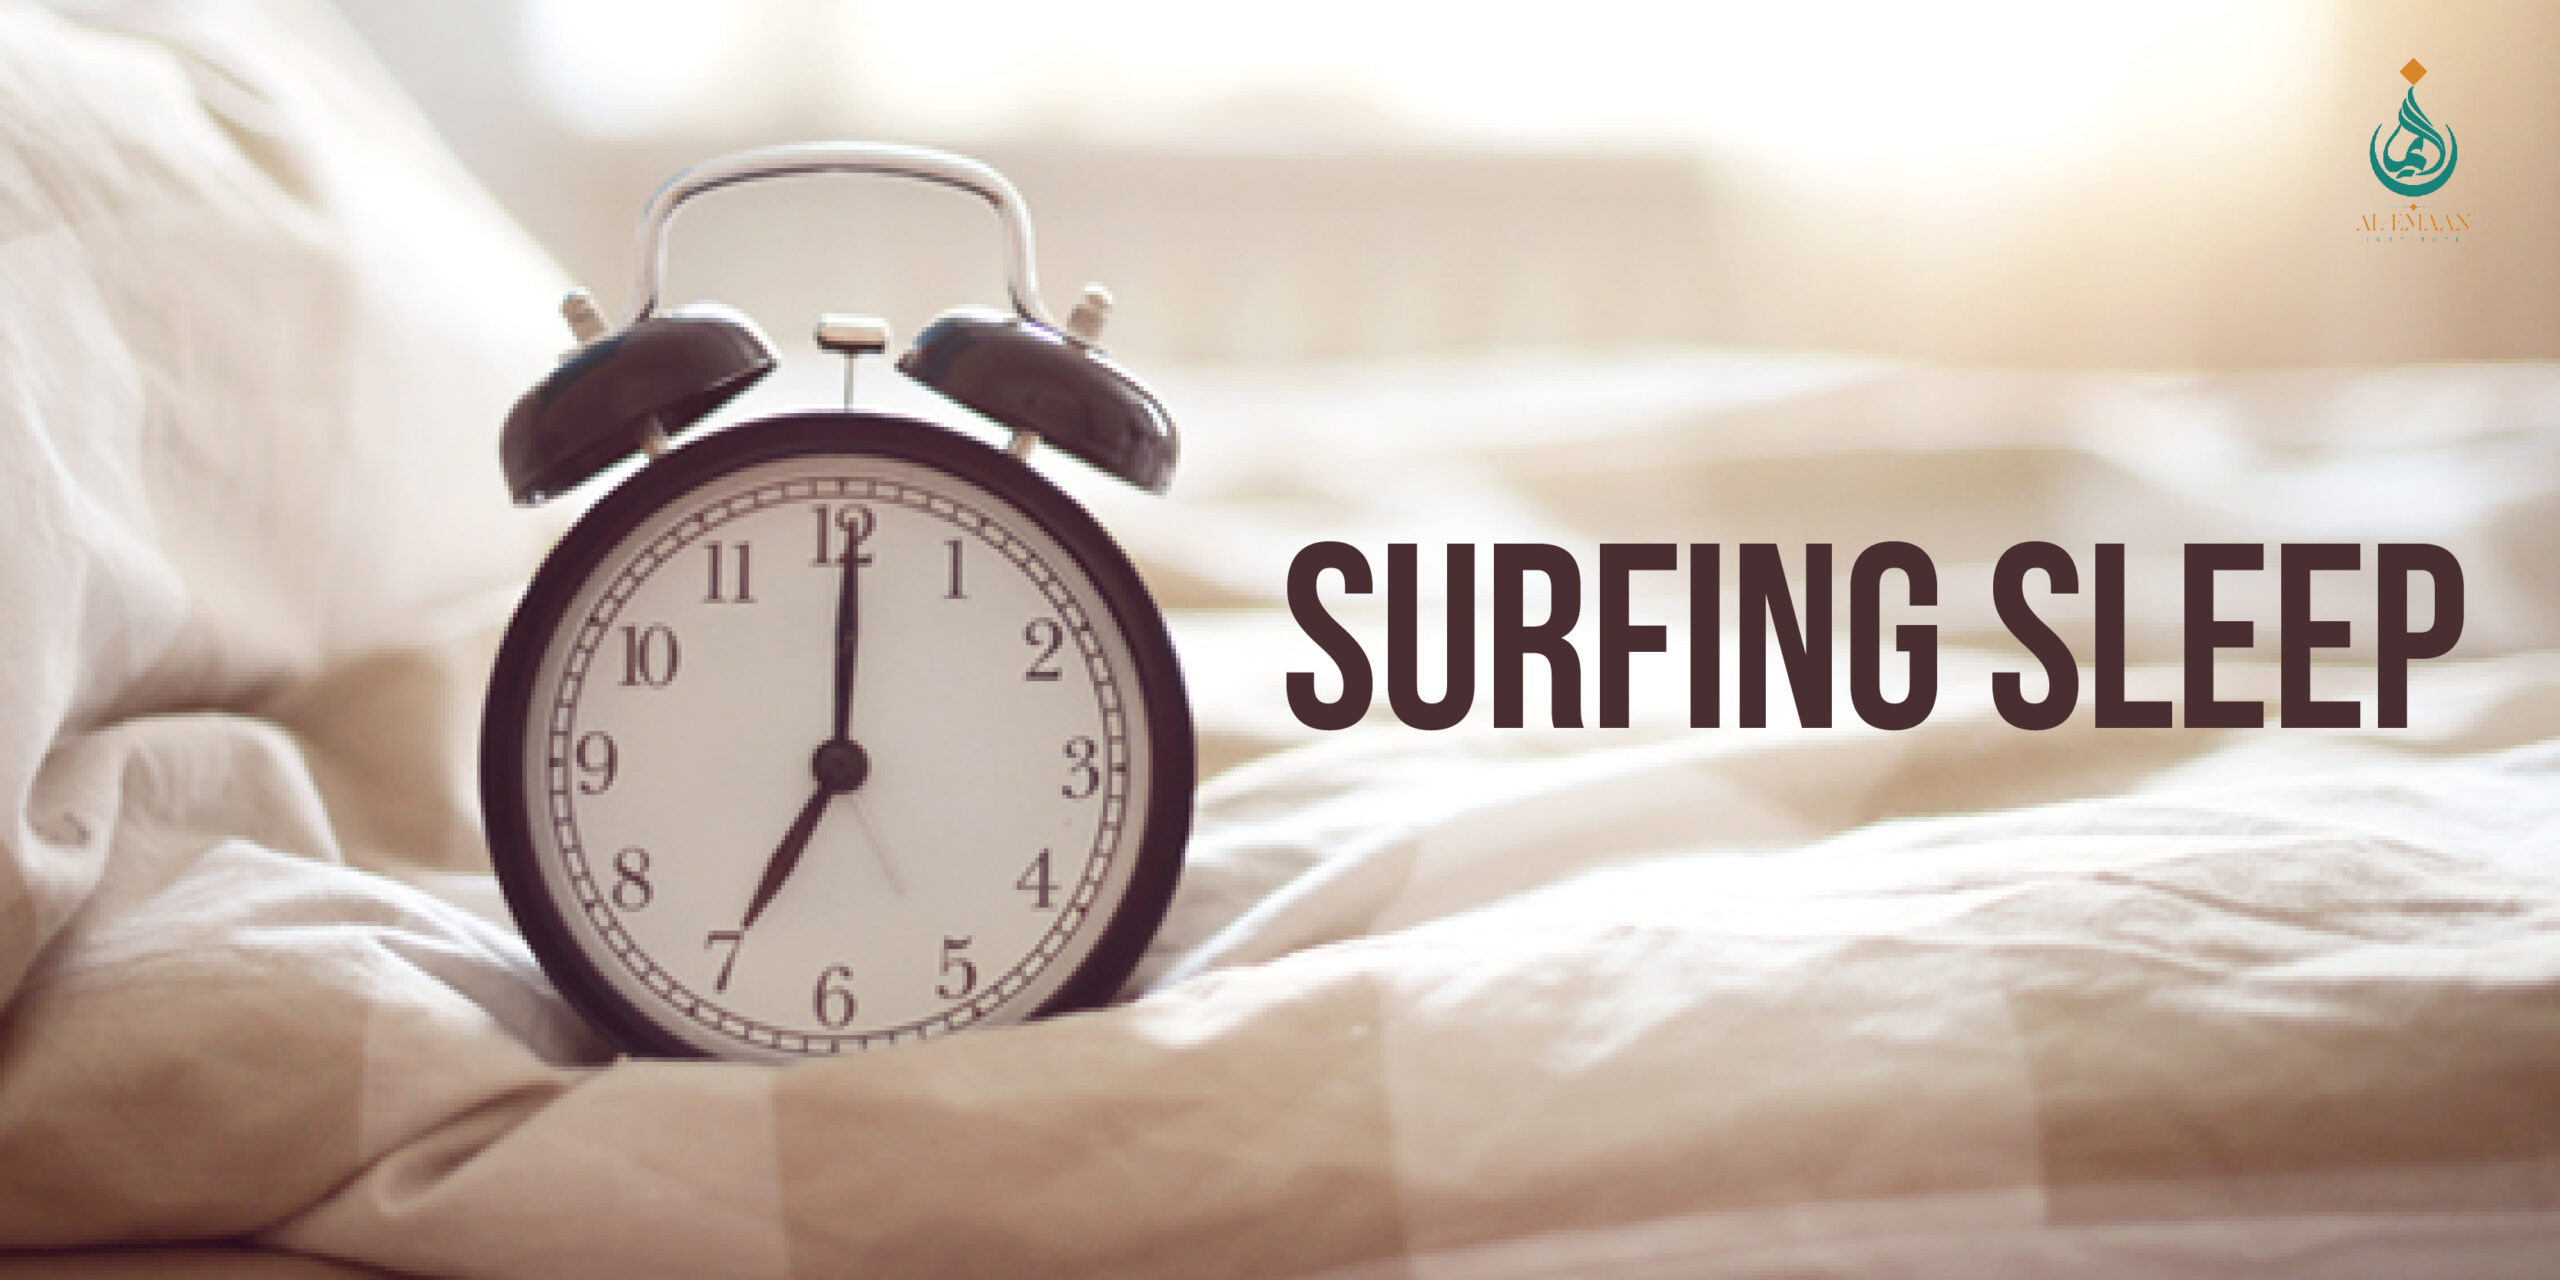 Surfing Sleep